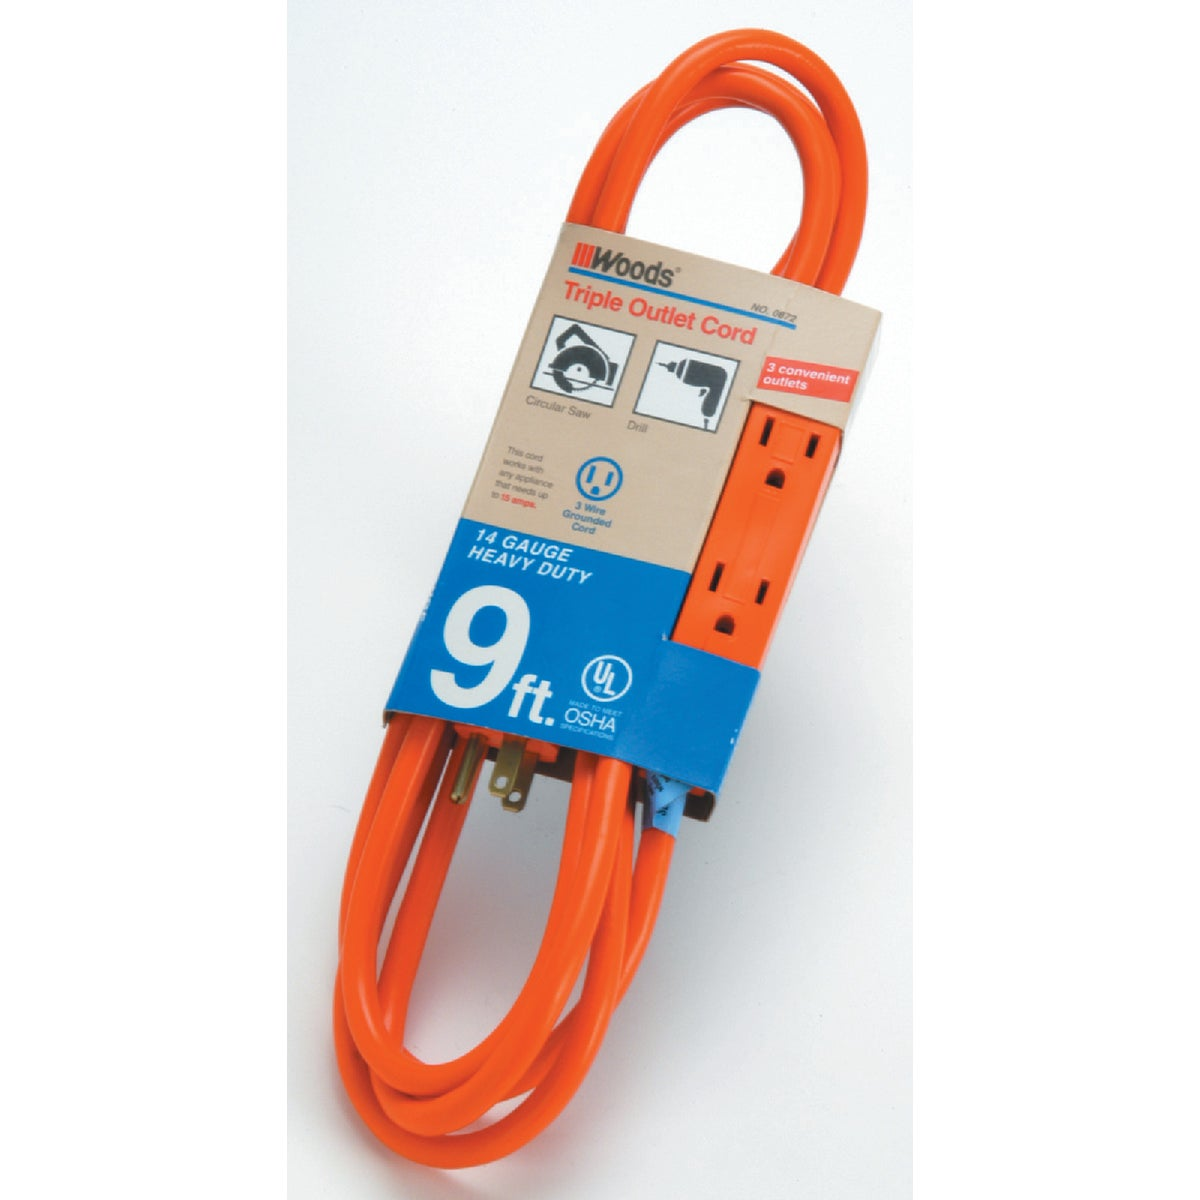 9' 14/3 3-OUTLET CORD